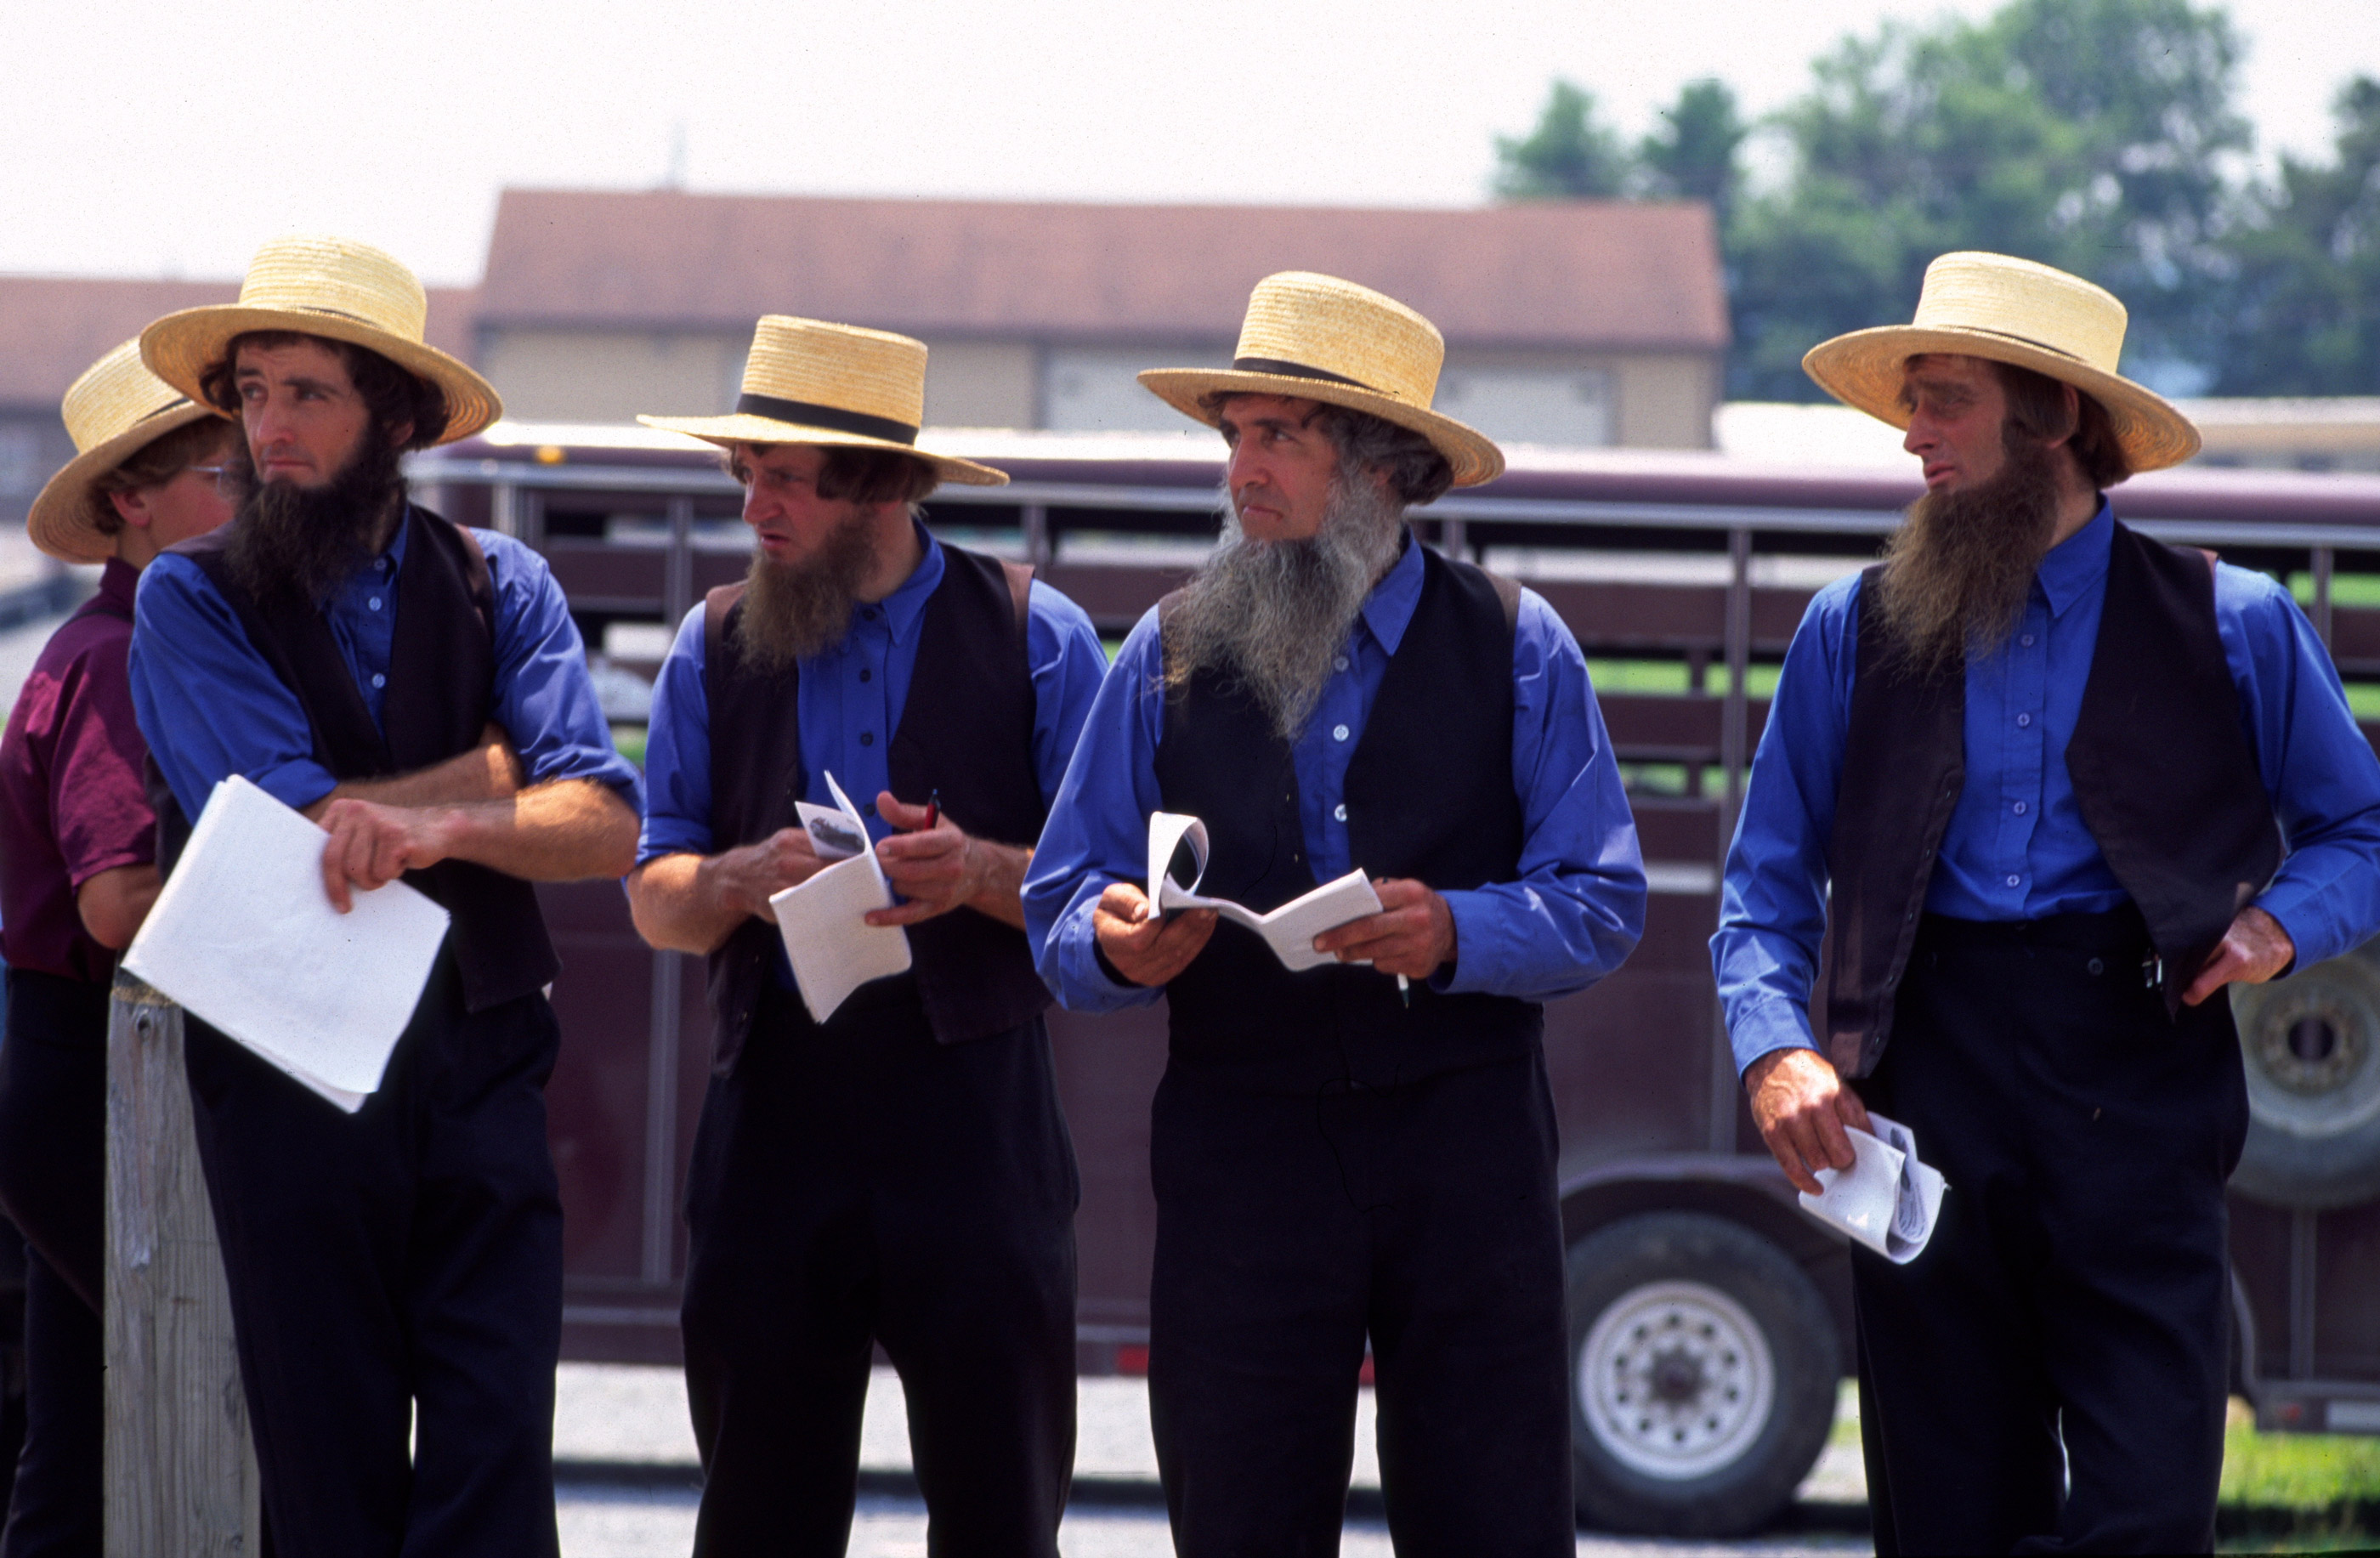 This Is What The Amish Wear And Why The Way Of The Amish Guff